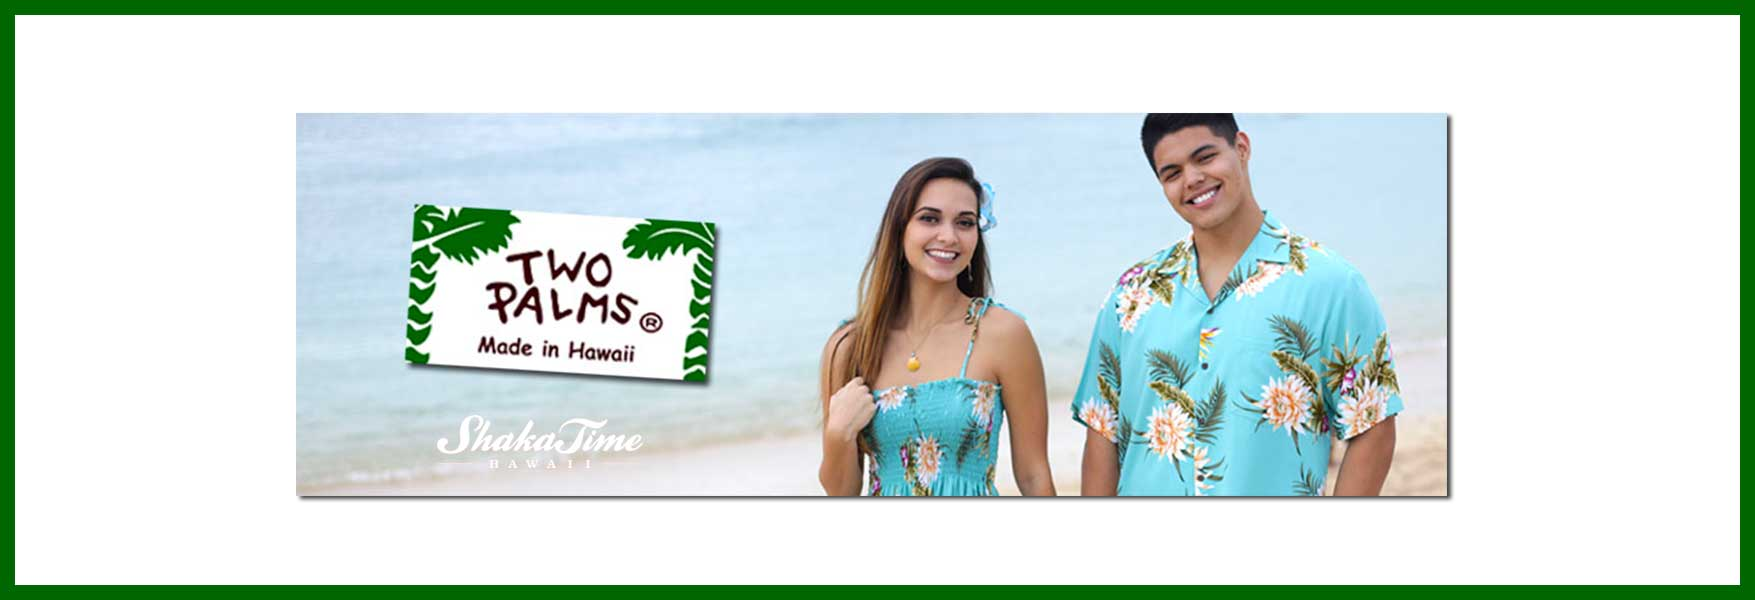 Two Palms Hawaiian Clothes Brand